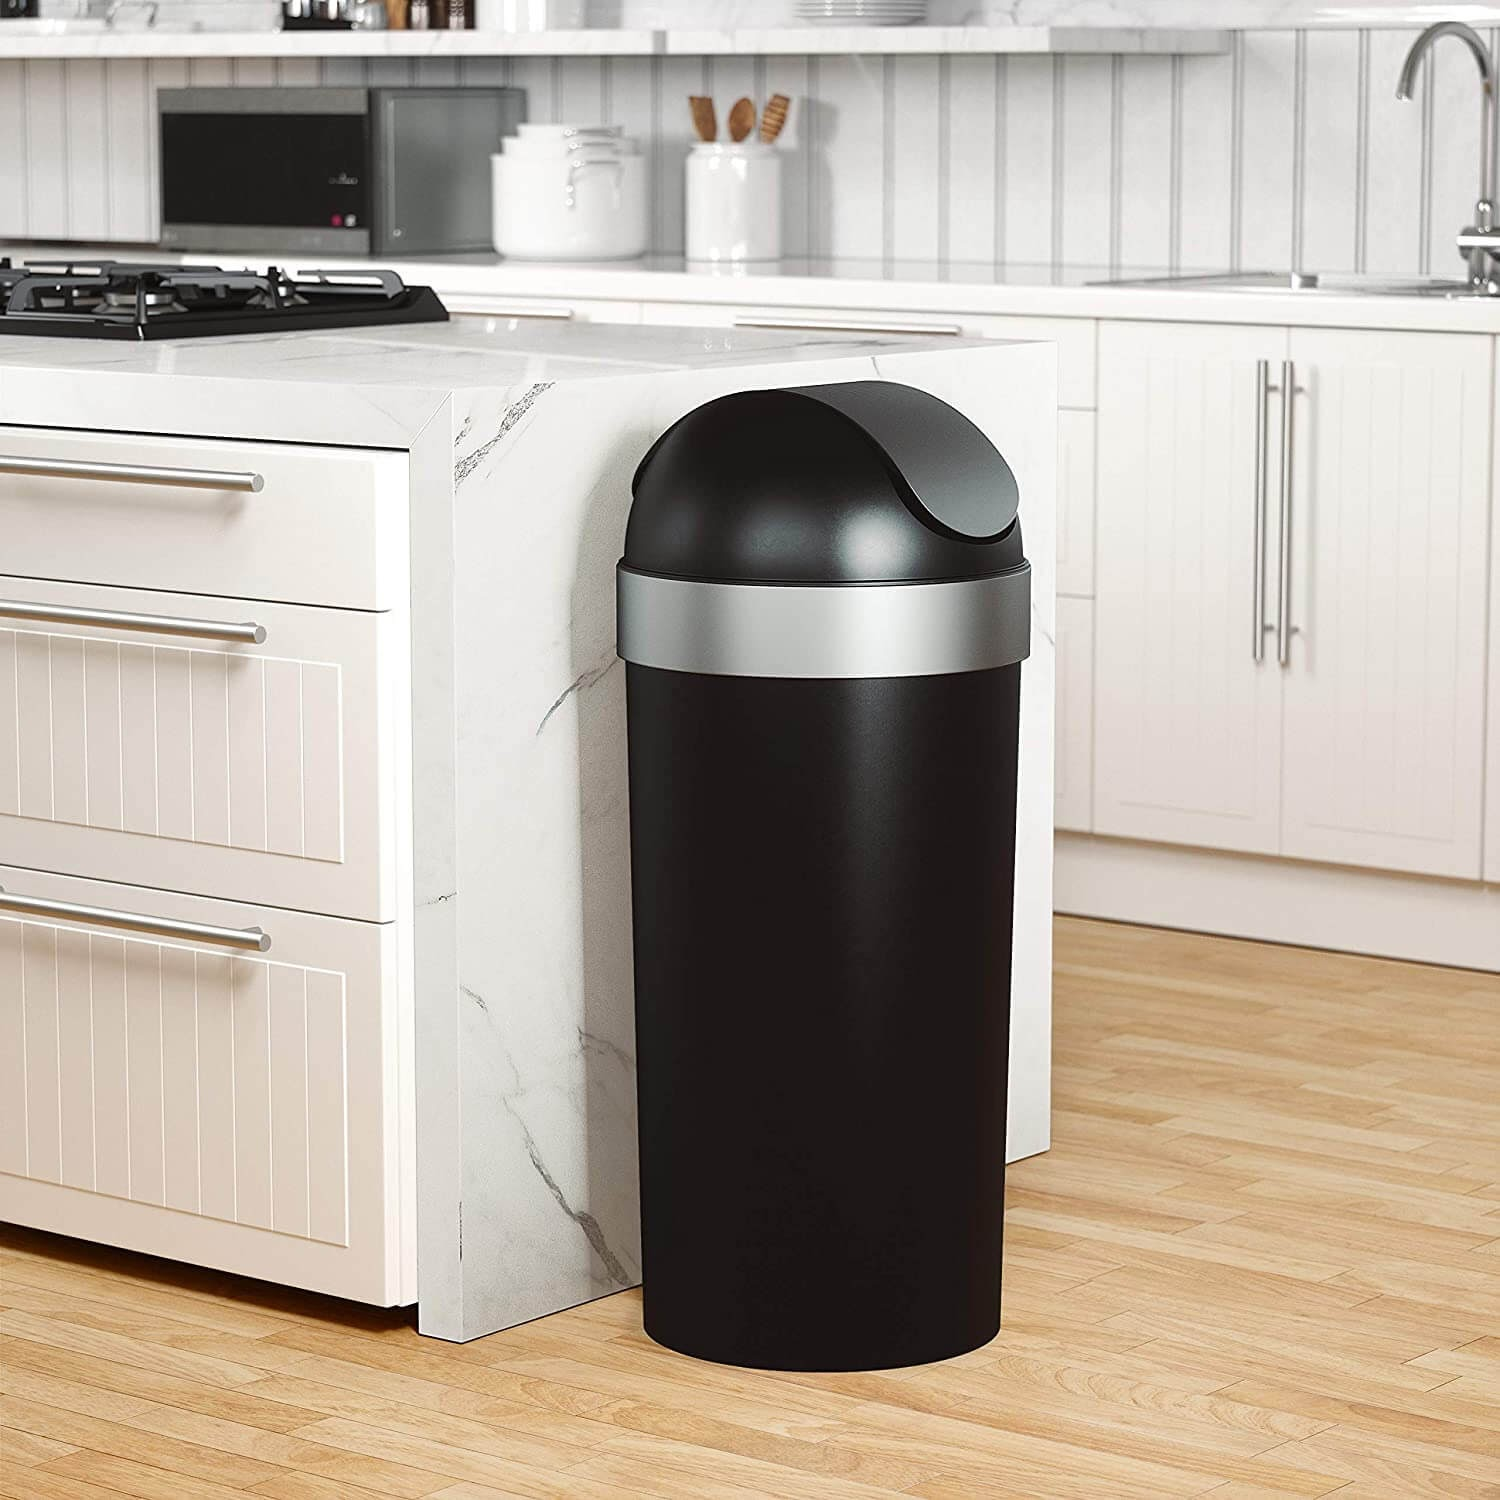 Umbra Venti 16-Gallon Swing Top Kitchen Trash Can